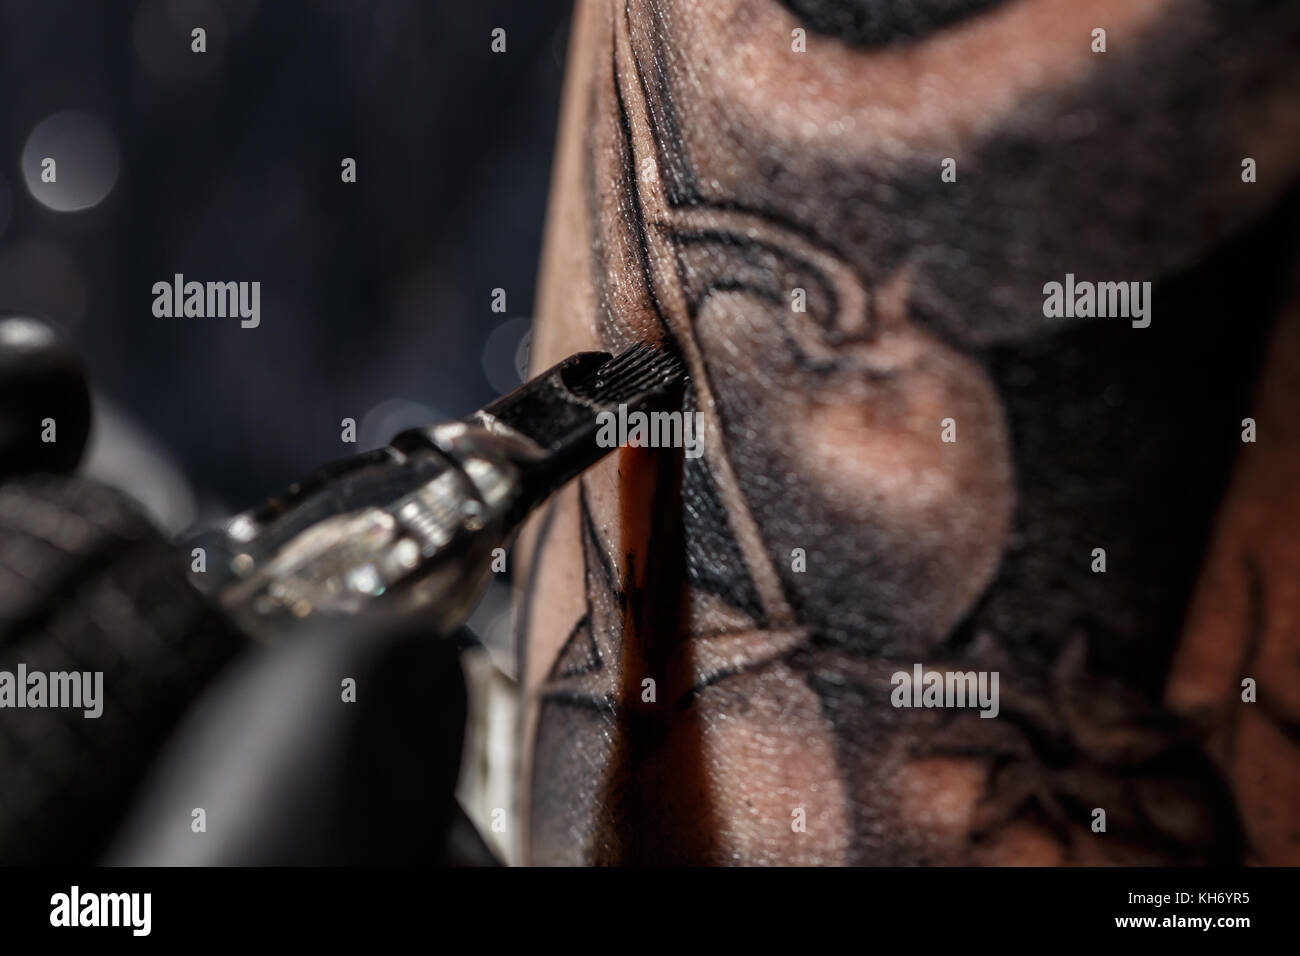 Hands of the artist tattooing of man's skin - Stock Image